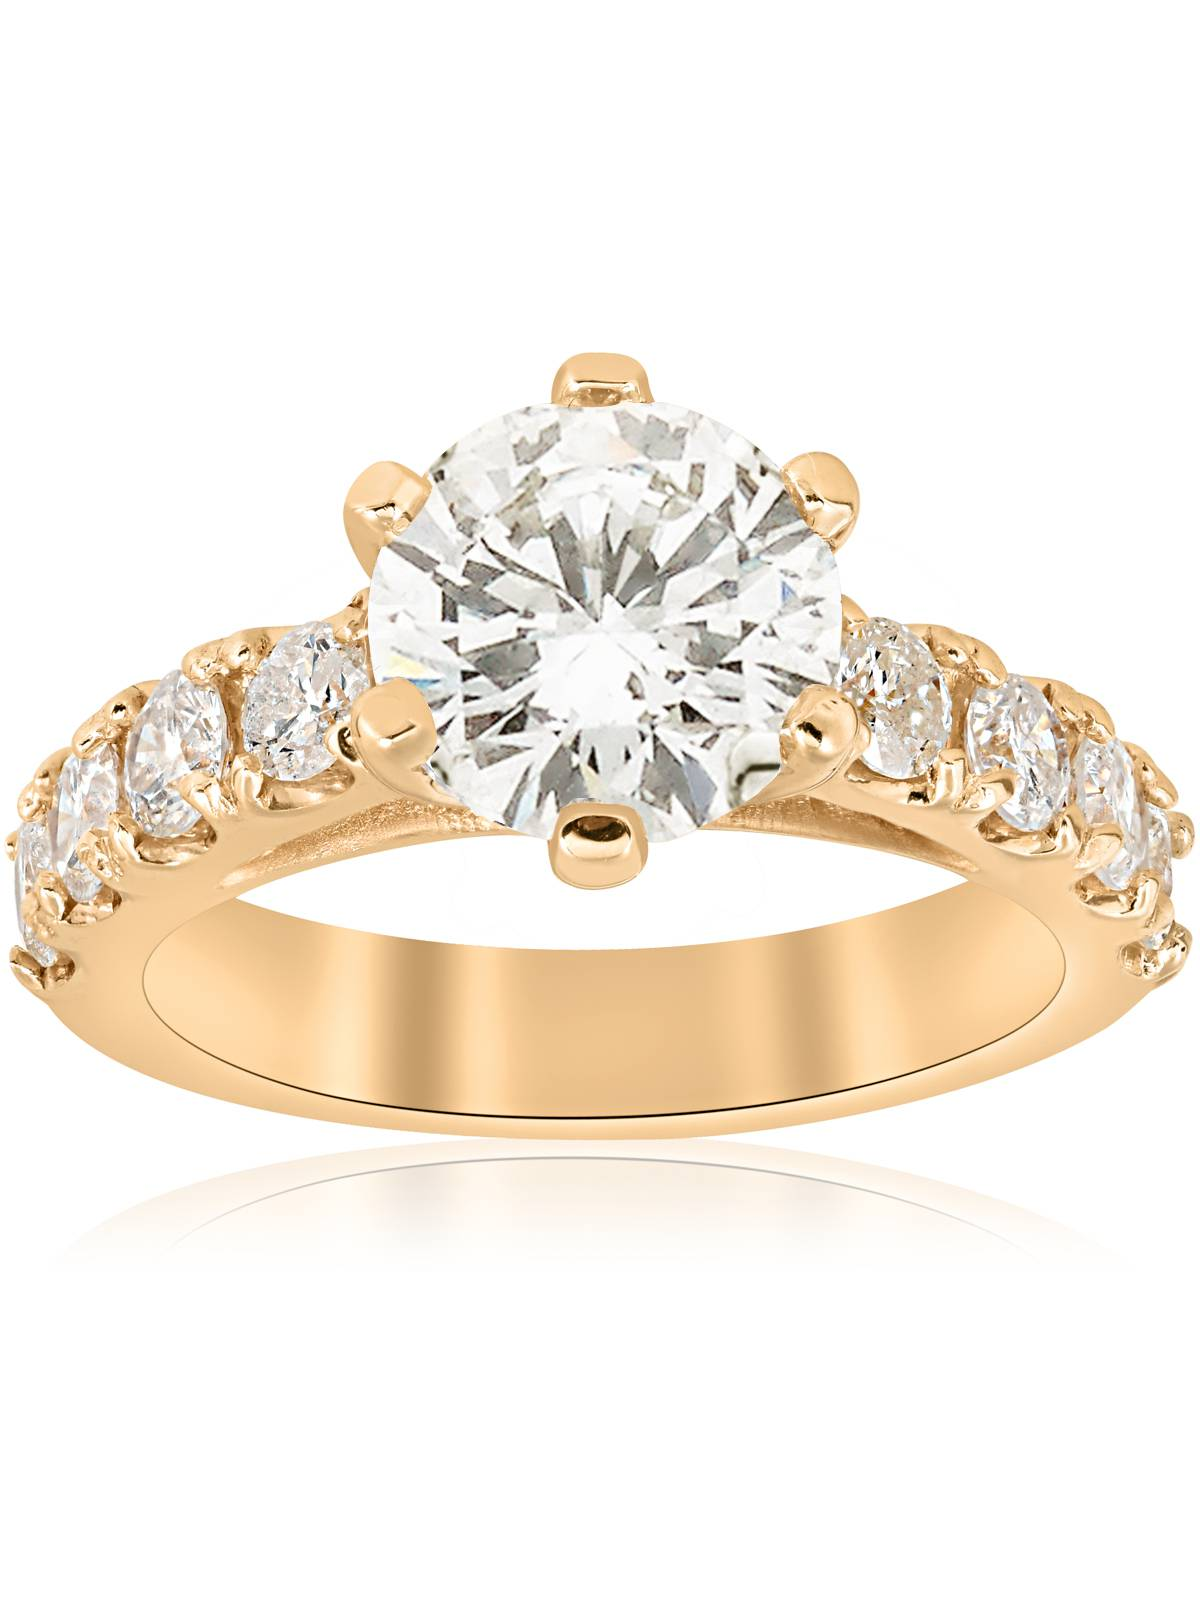 Huge 4 1 2ct Diamond Engagement Ring 14k Yellow Gold Round Cut Jewelry Enhanced by Pompeii3